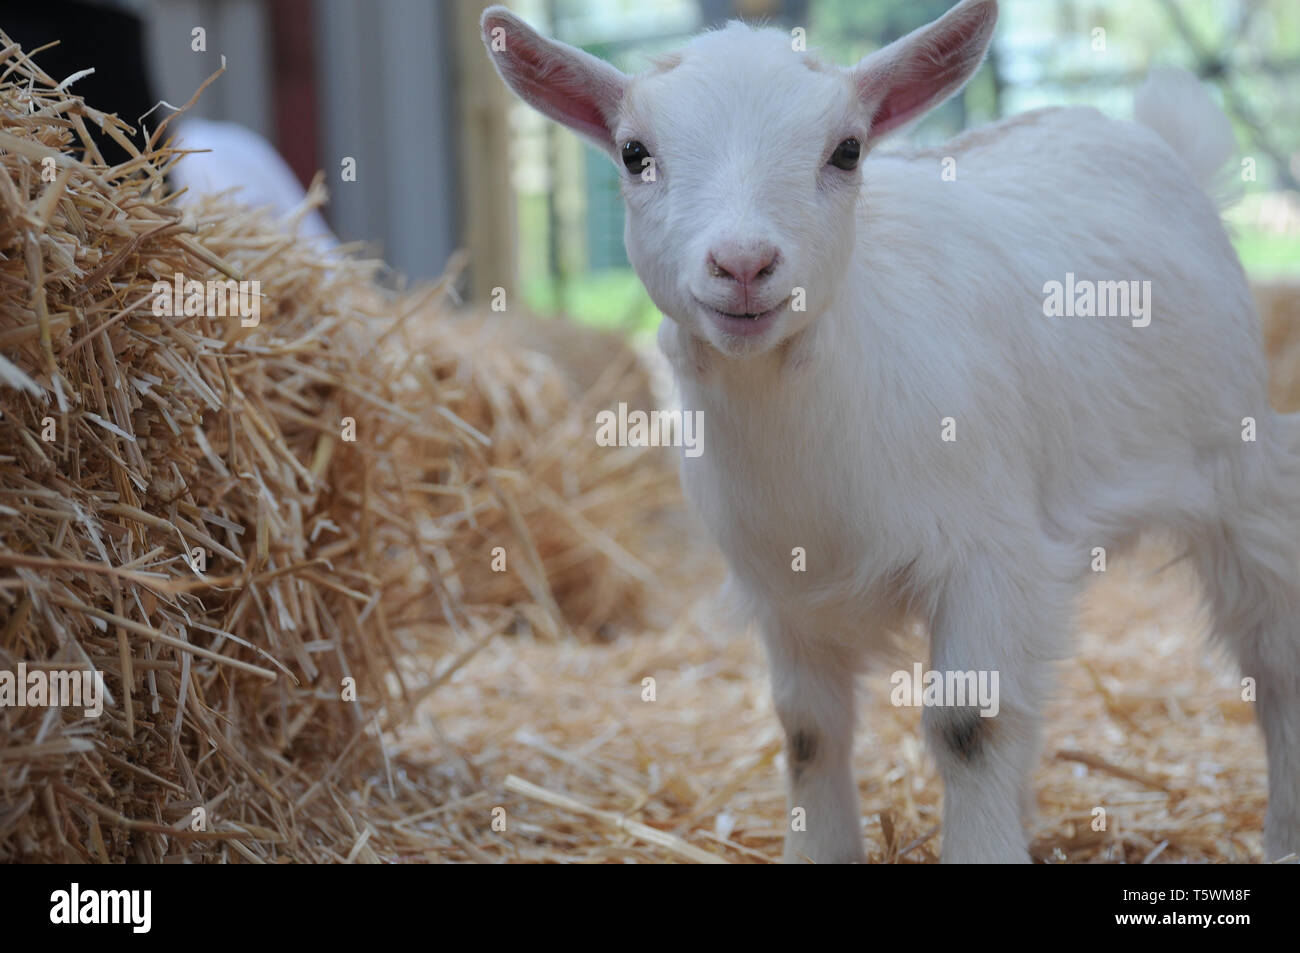 A young baby pygmy goat kid playing in straw in a barn - Stock Image